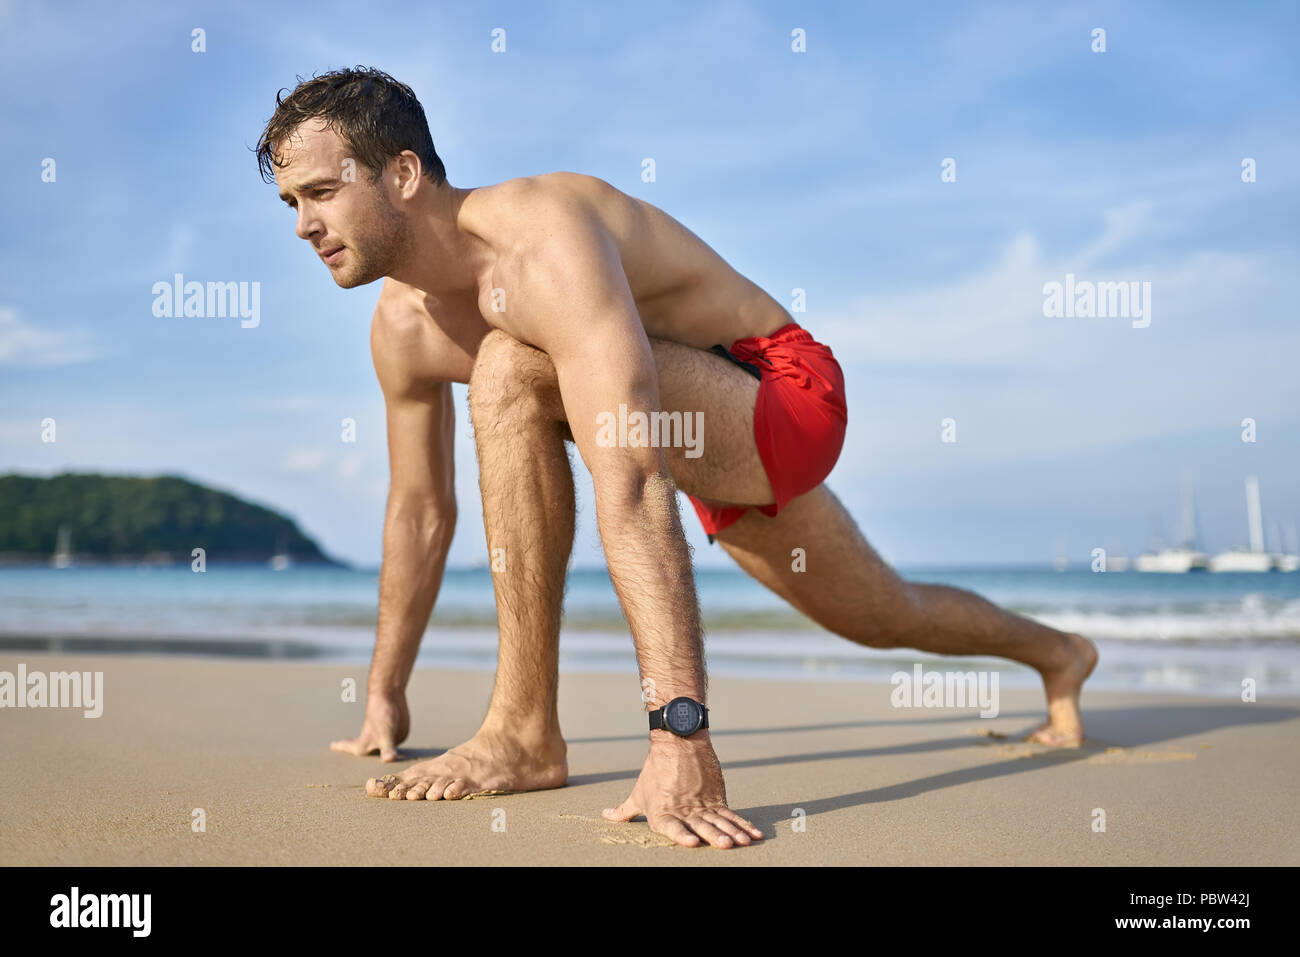 Handsome tanned man on the sand beach on the sunny background of the sea with white boats and the blue sky. He wears a red swim trunks and a dark watc - Stock Image